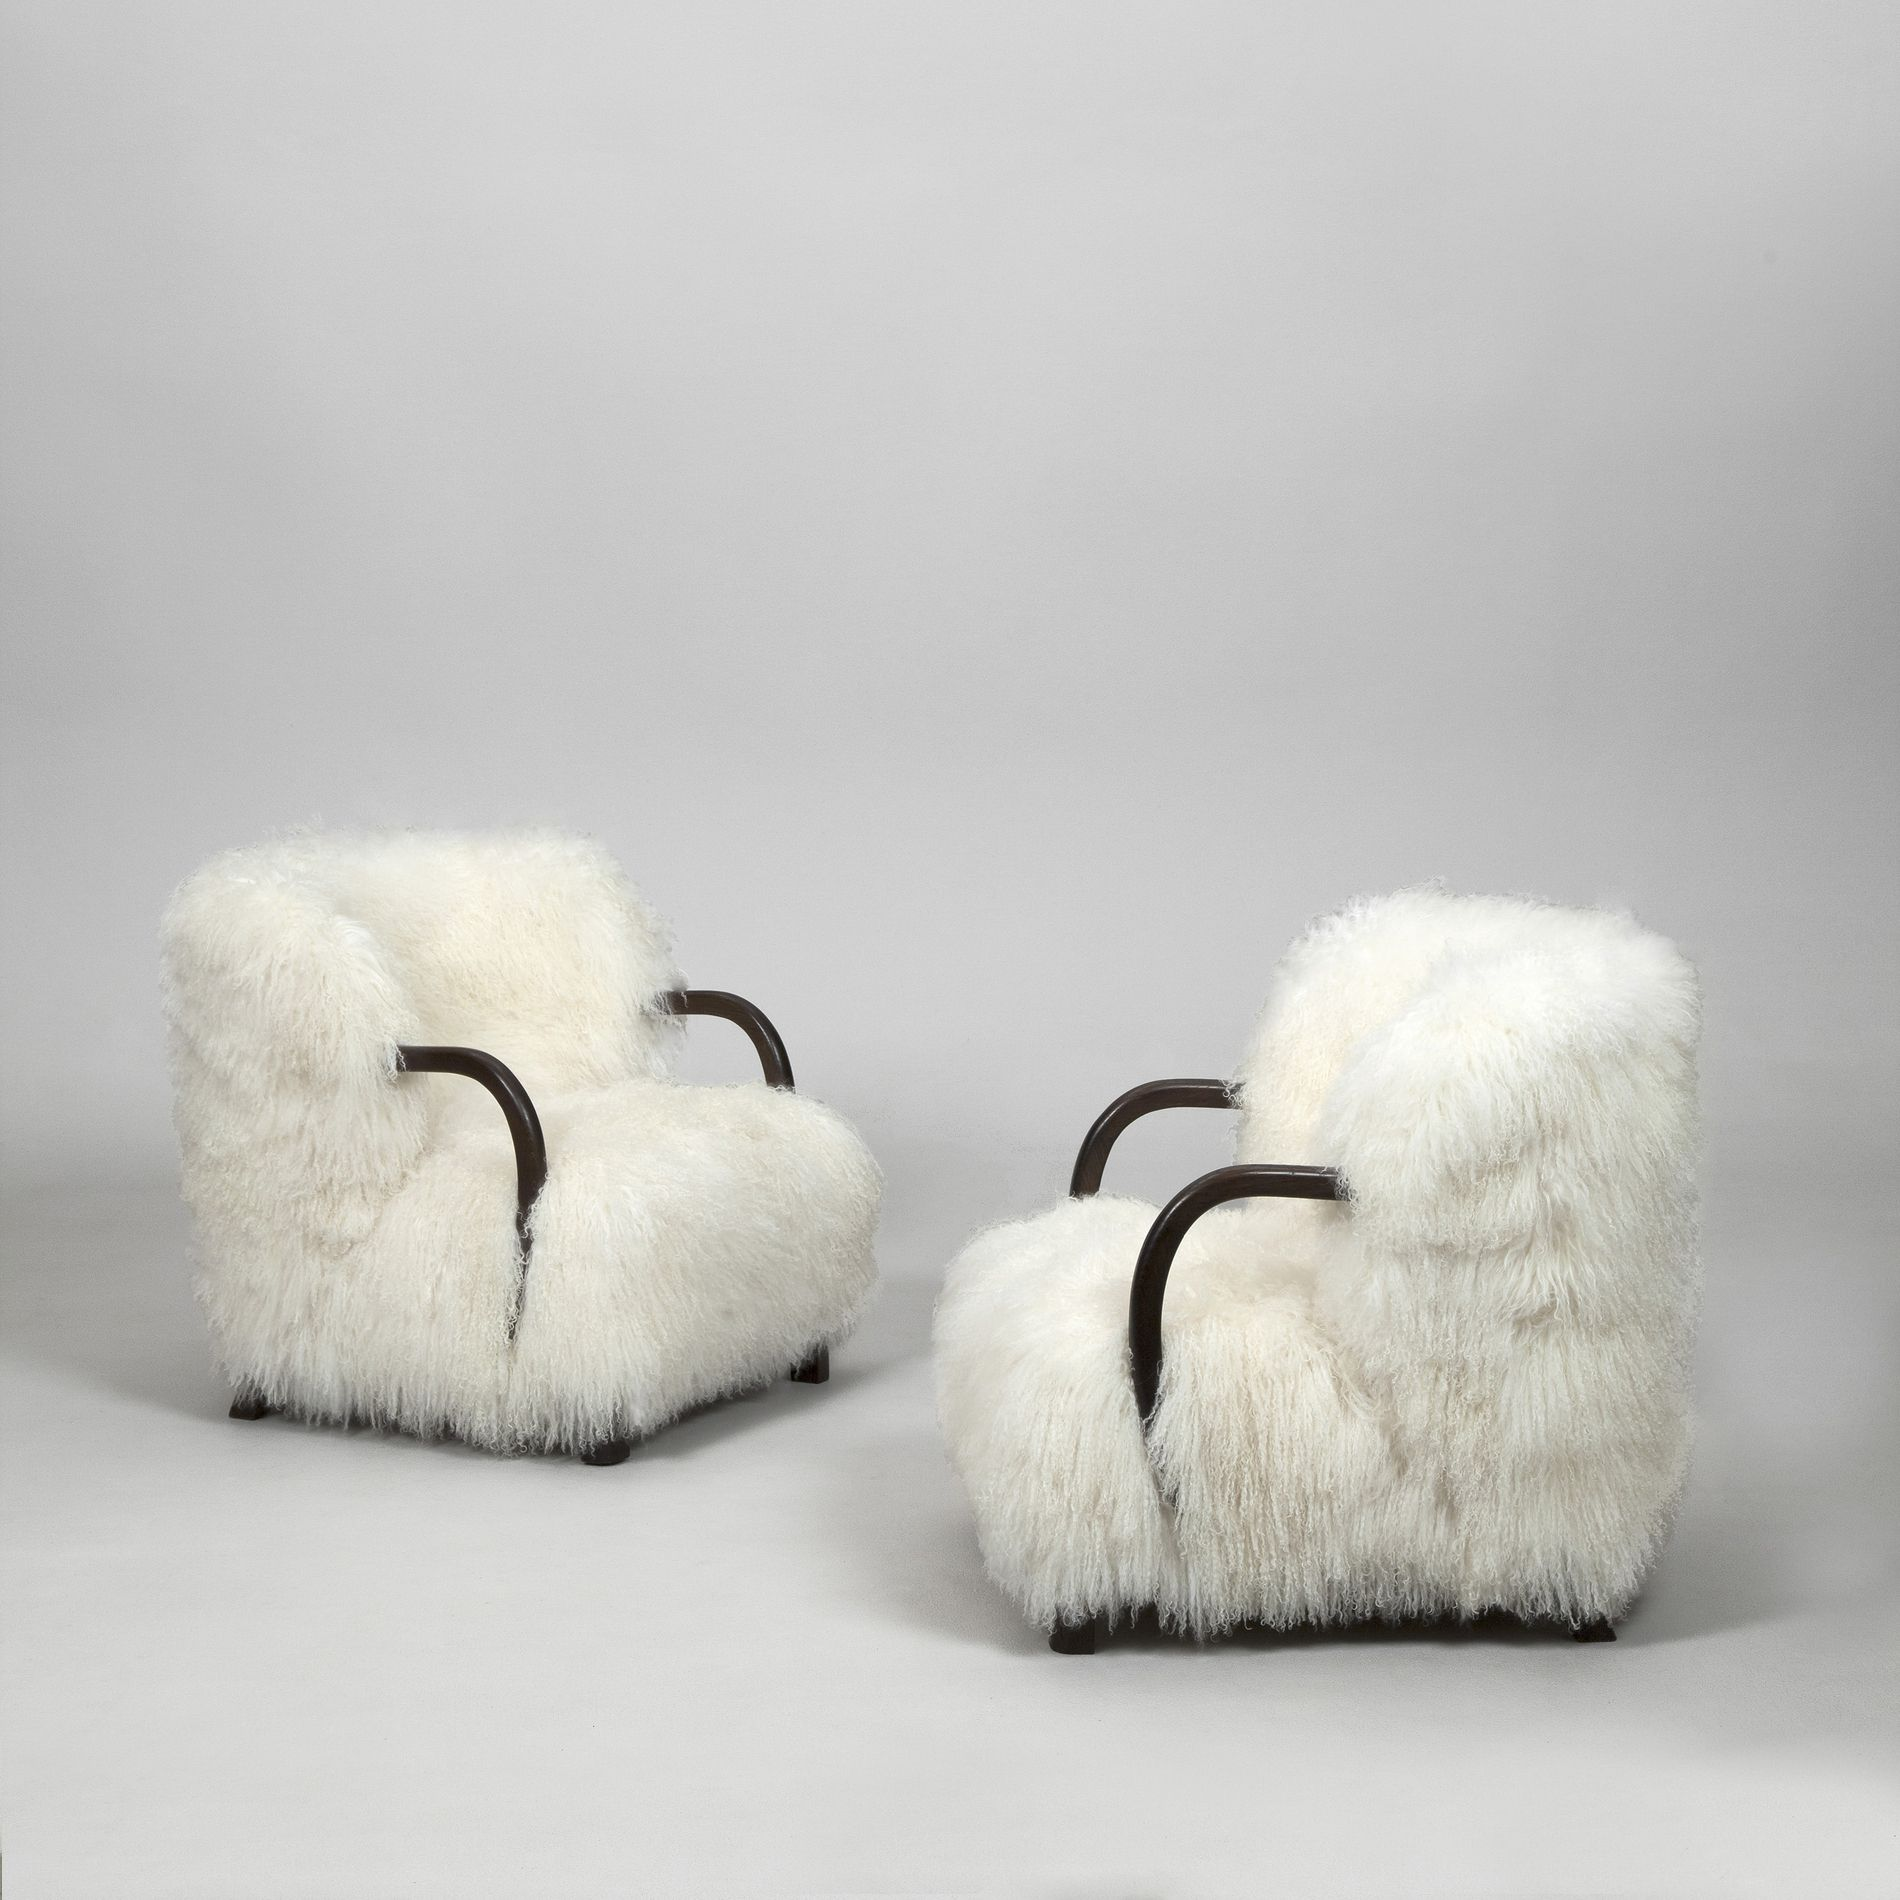 Viggo Boesen Attributed; Oak and Goat Wool Lounge Chairs by Mobelvaerk Edition Slagelse, 1940.